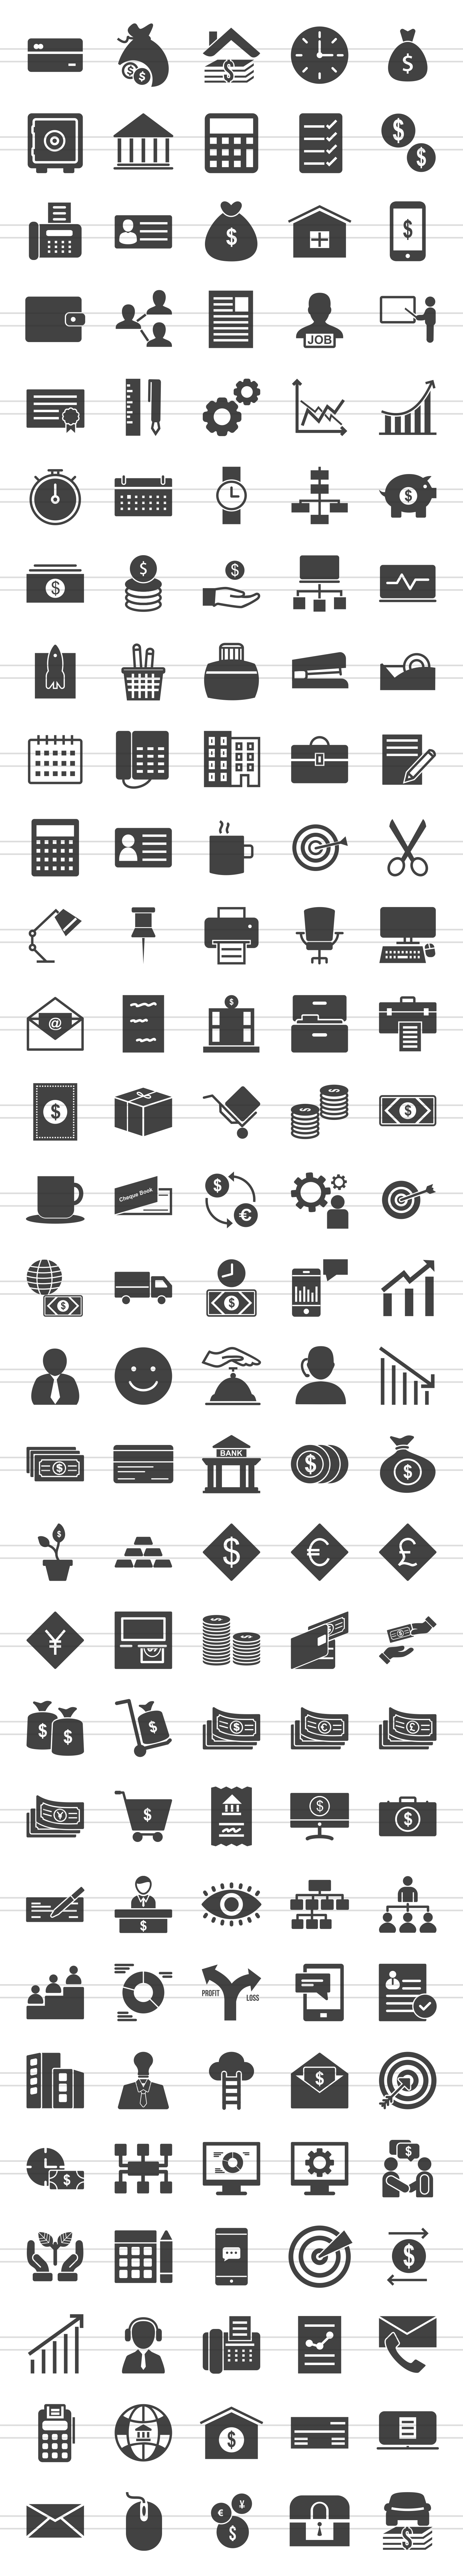 146 Business & FInance Glyph Icons example image 2